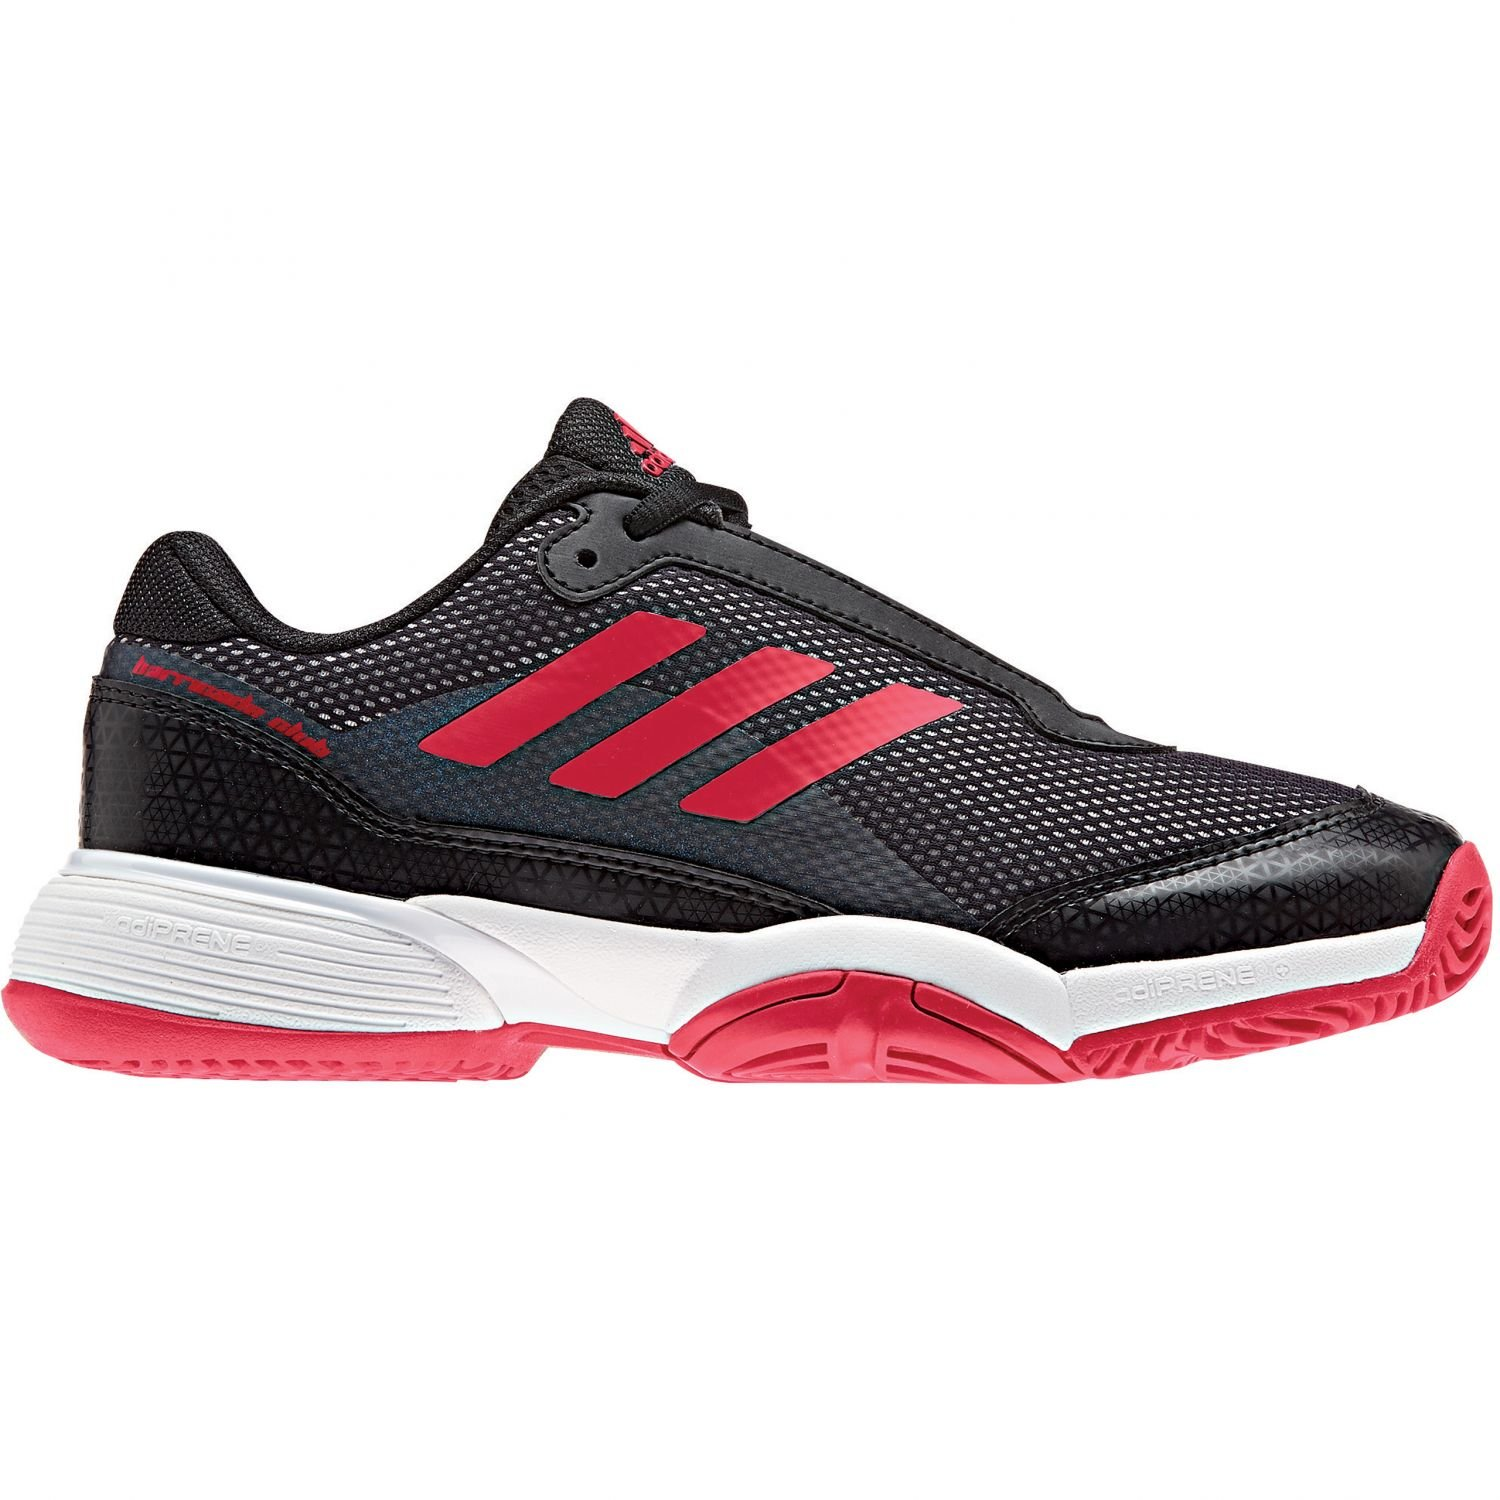 Adidas Barricade Club Xj, Chaussures de Tennis Mixte Adulte